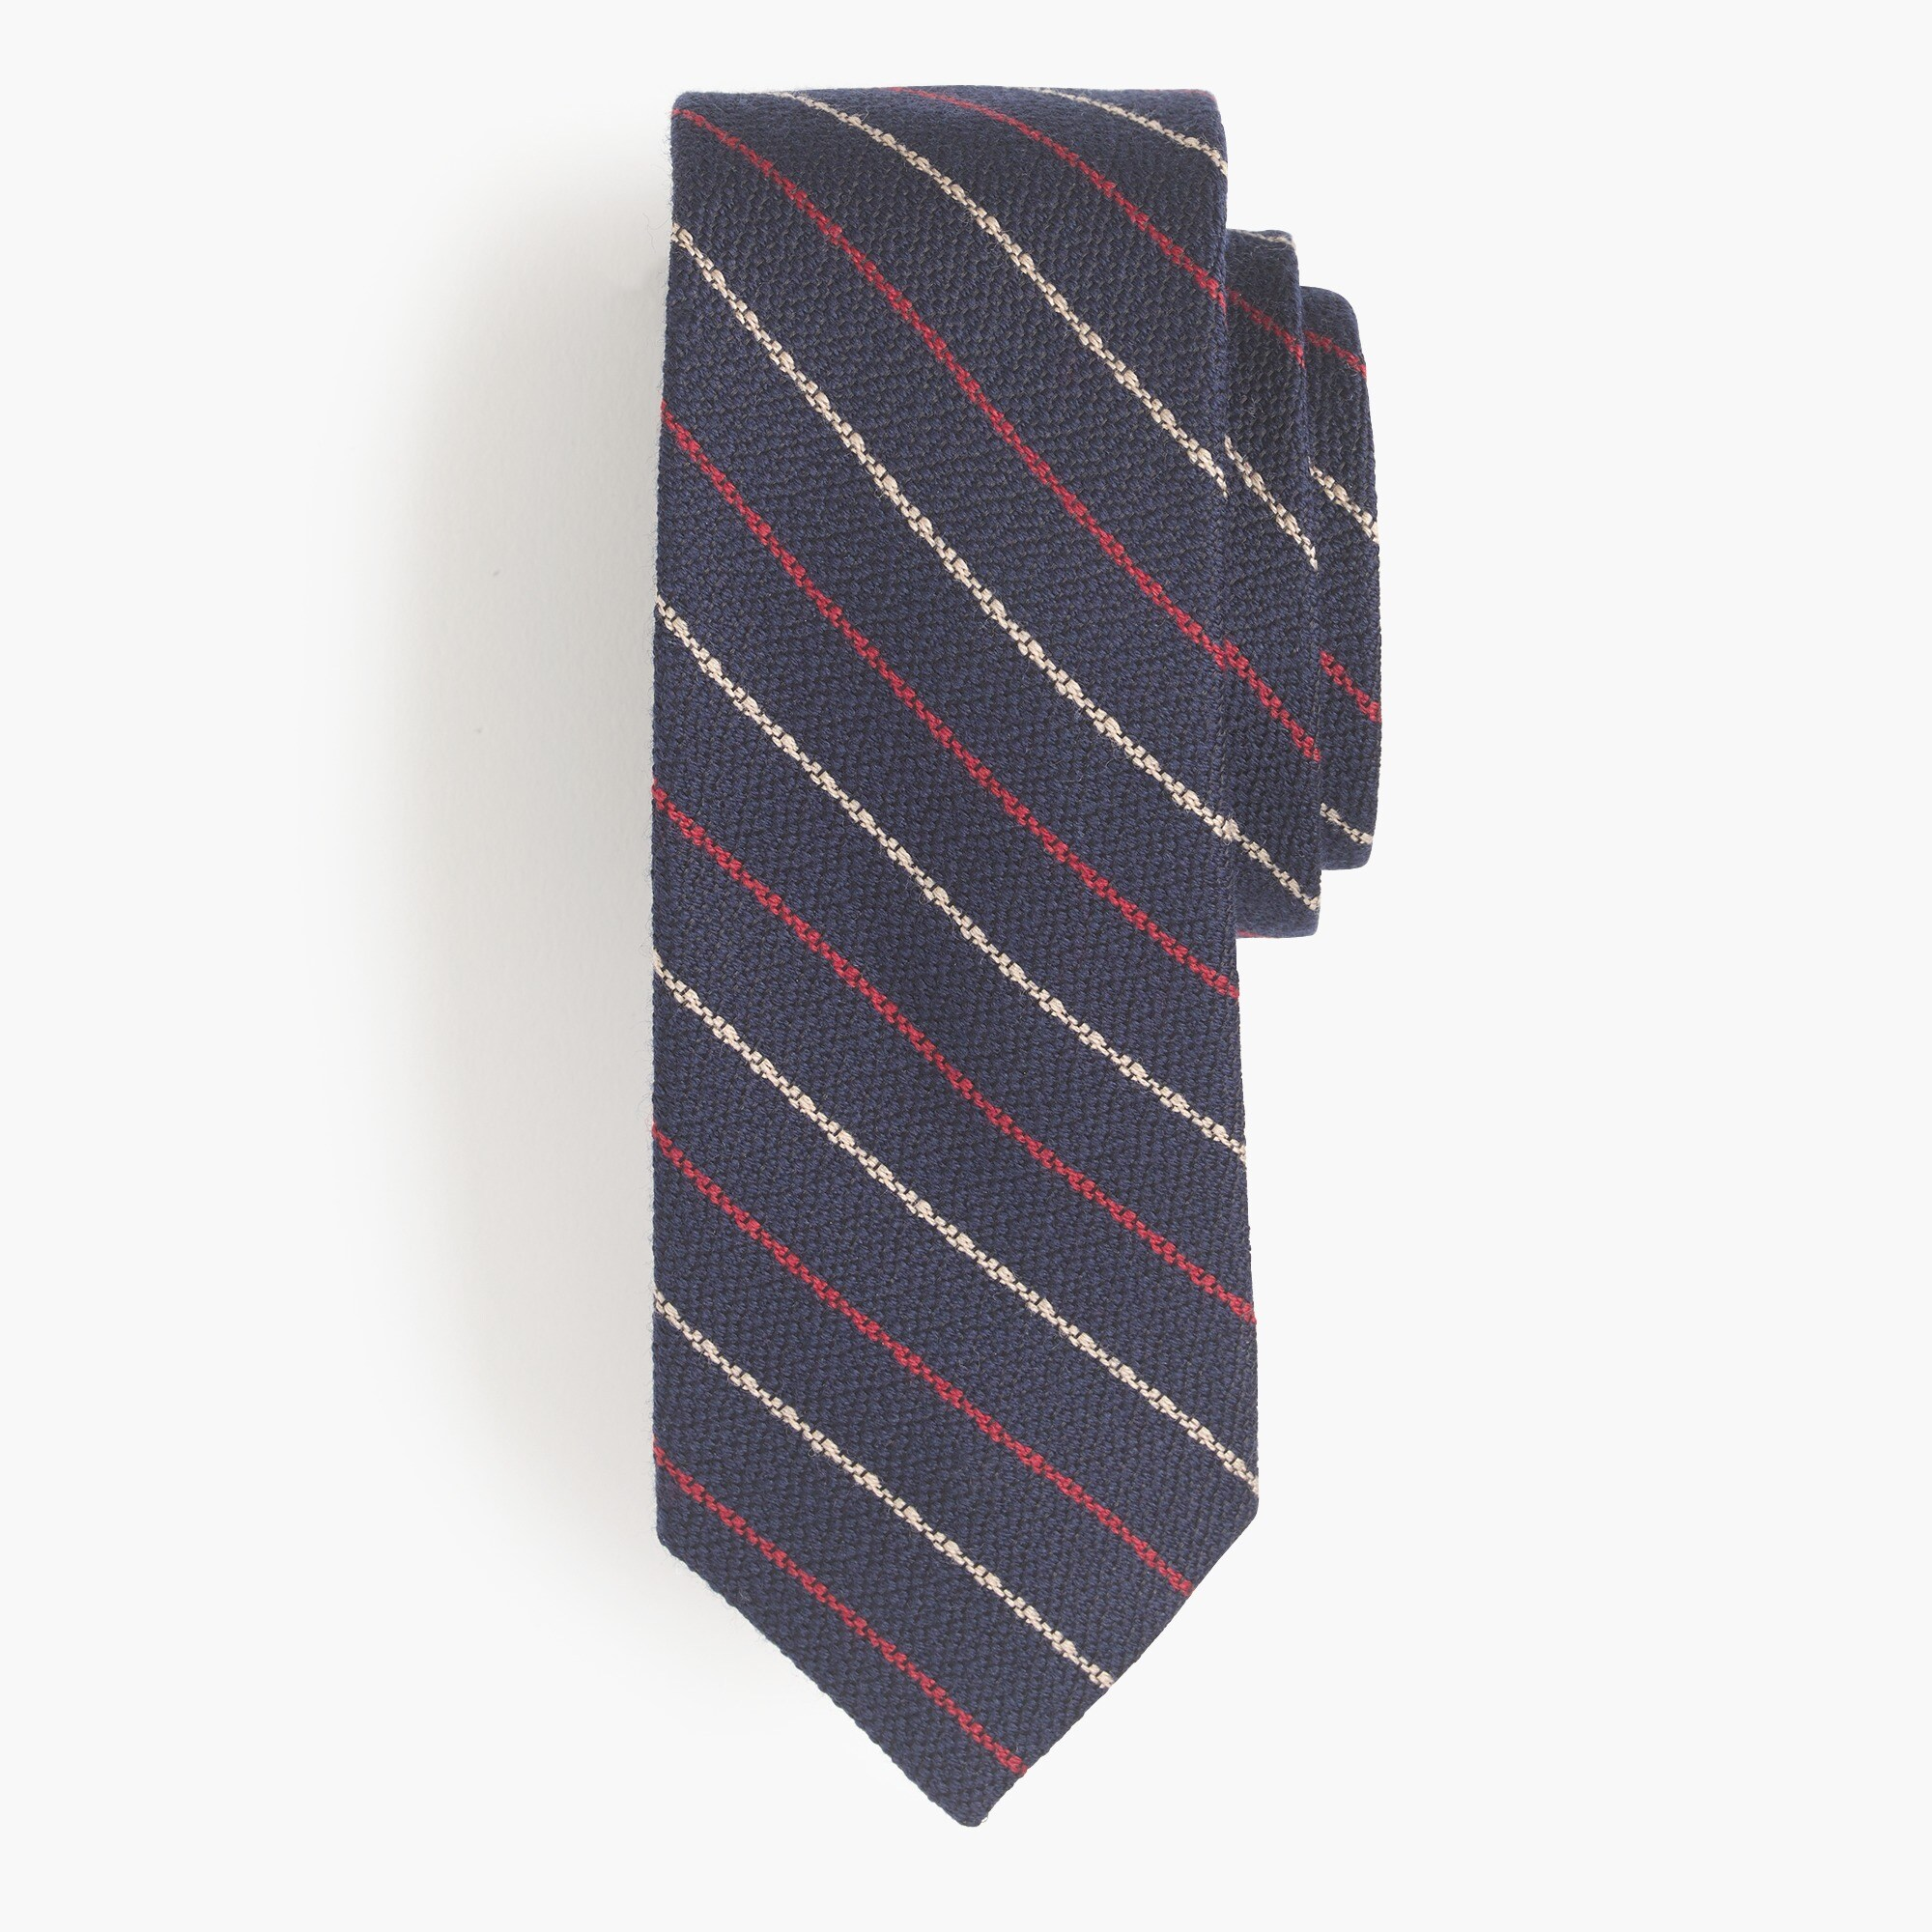 Image 1 for Wool-silk tie in dark grey stripe